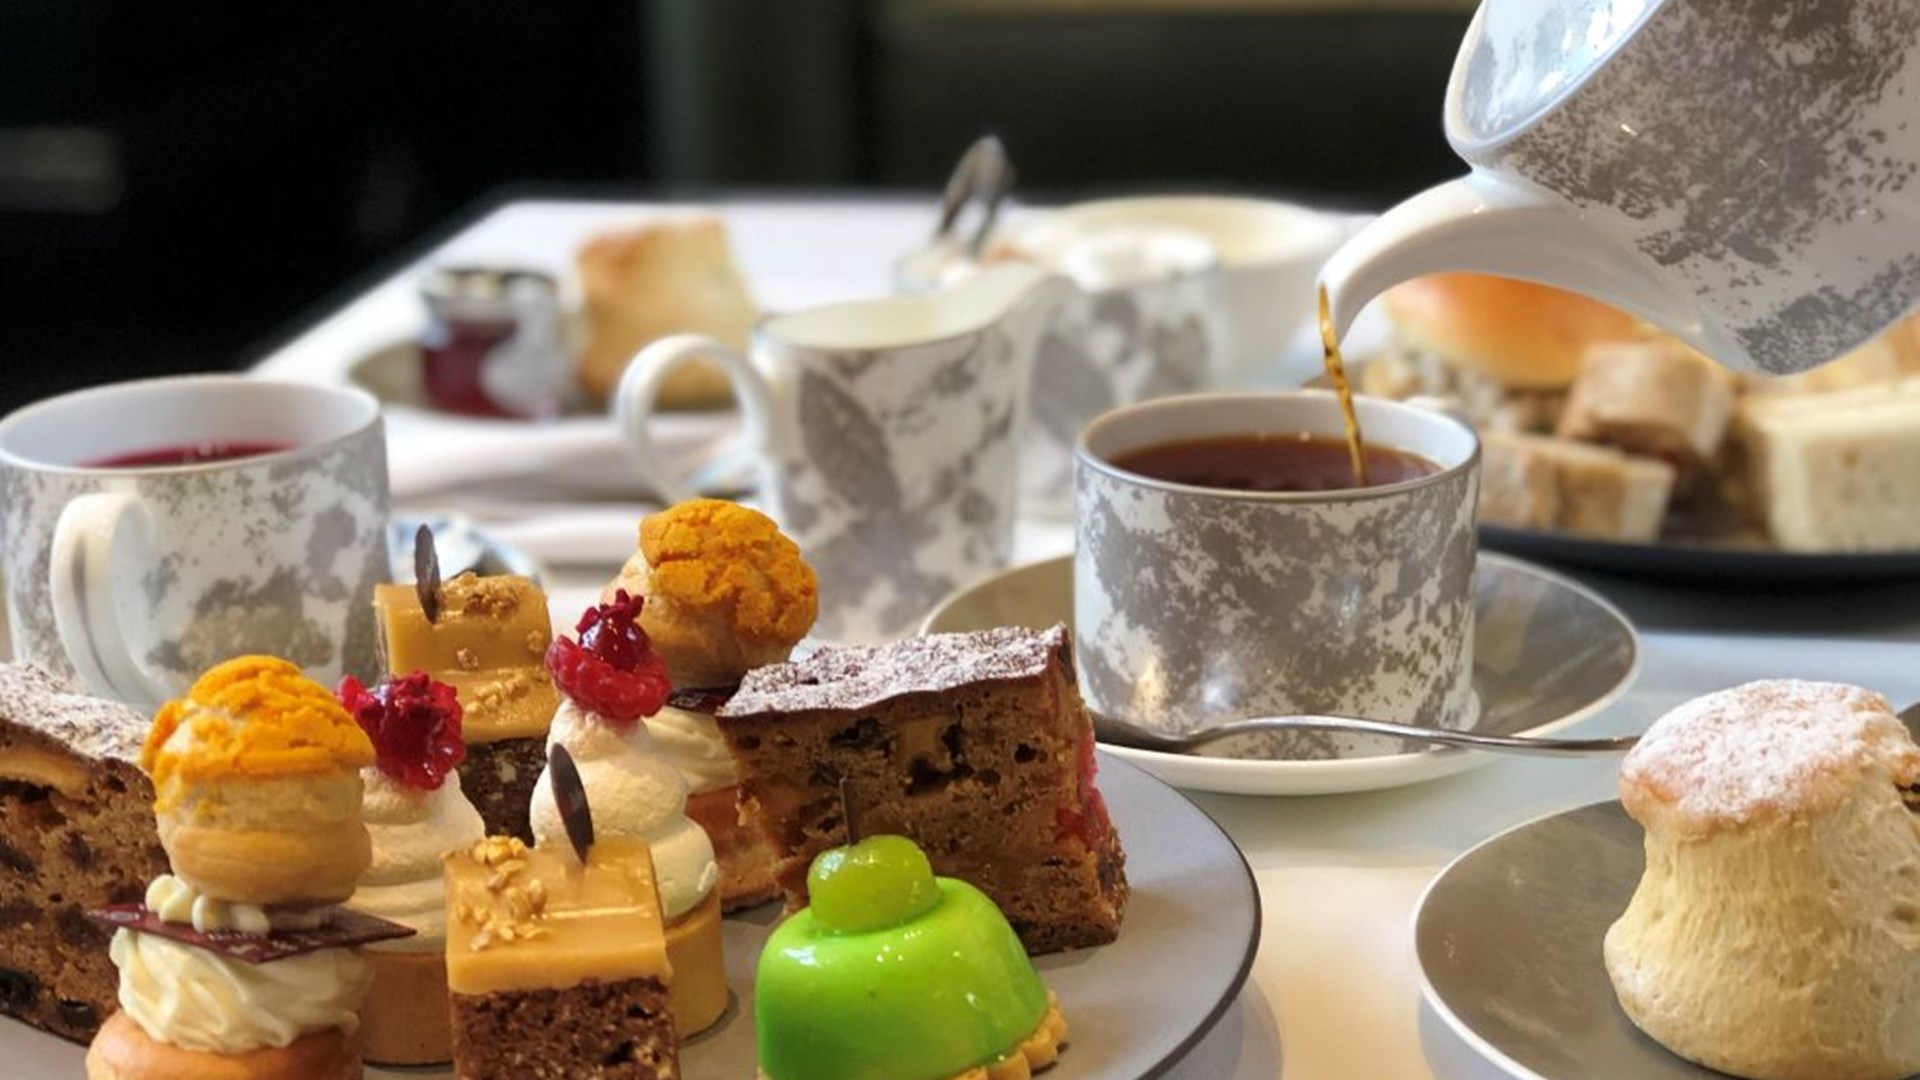 Afternoon Tea at The Belfry